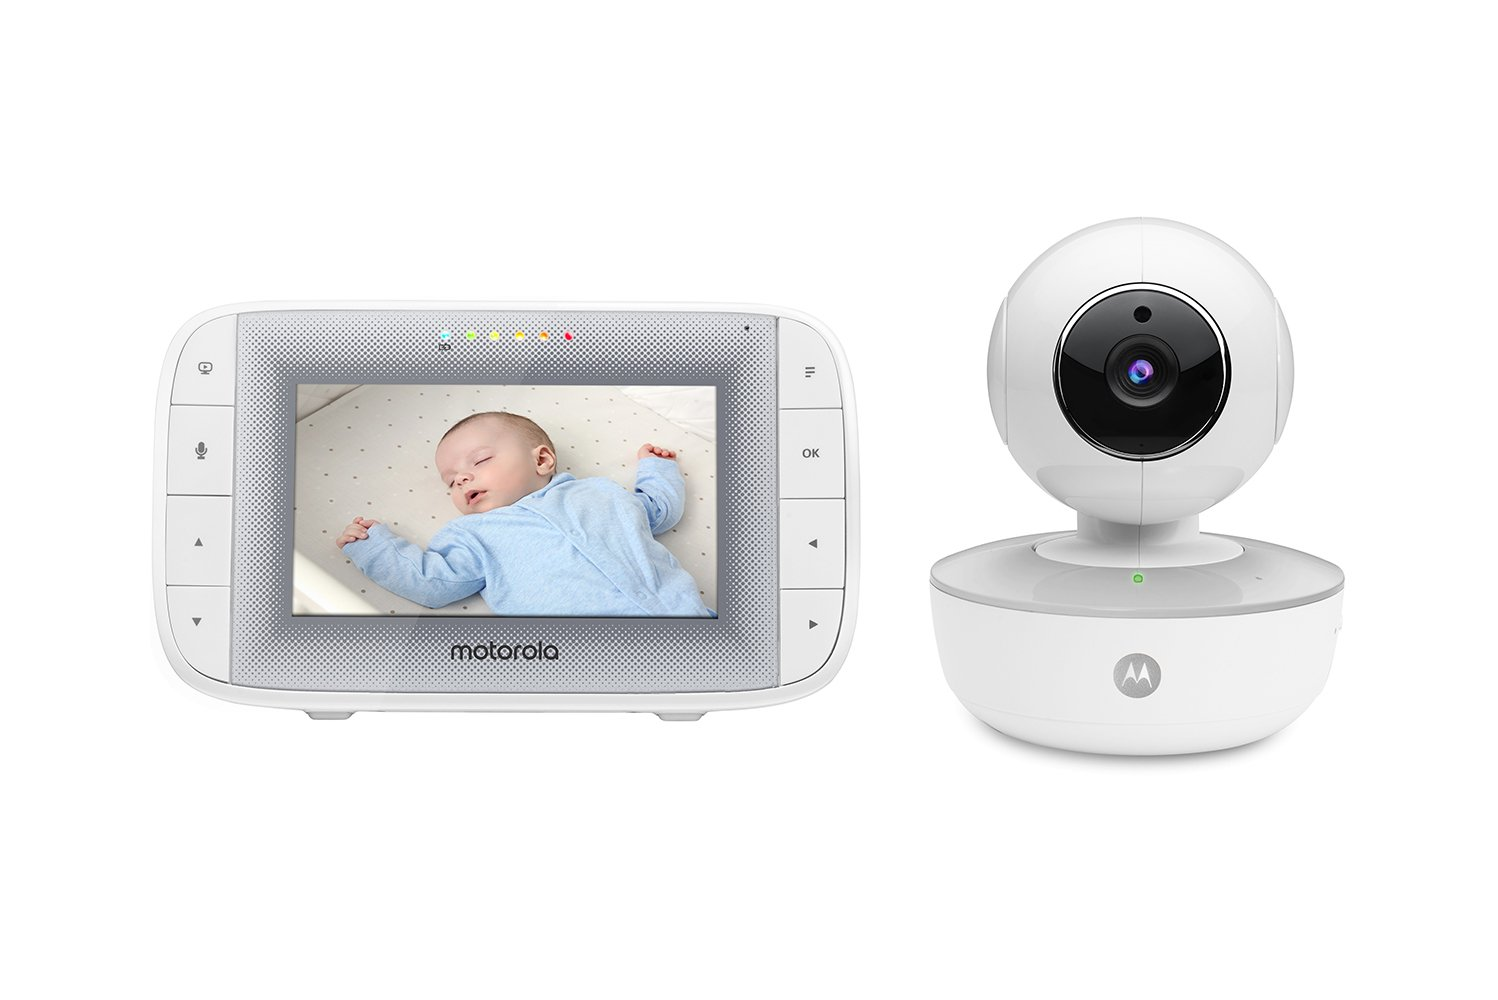 Motorola MBP 846 Smart Video 4.2inch Baby Monitor